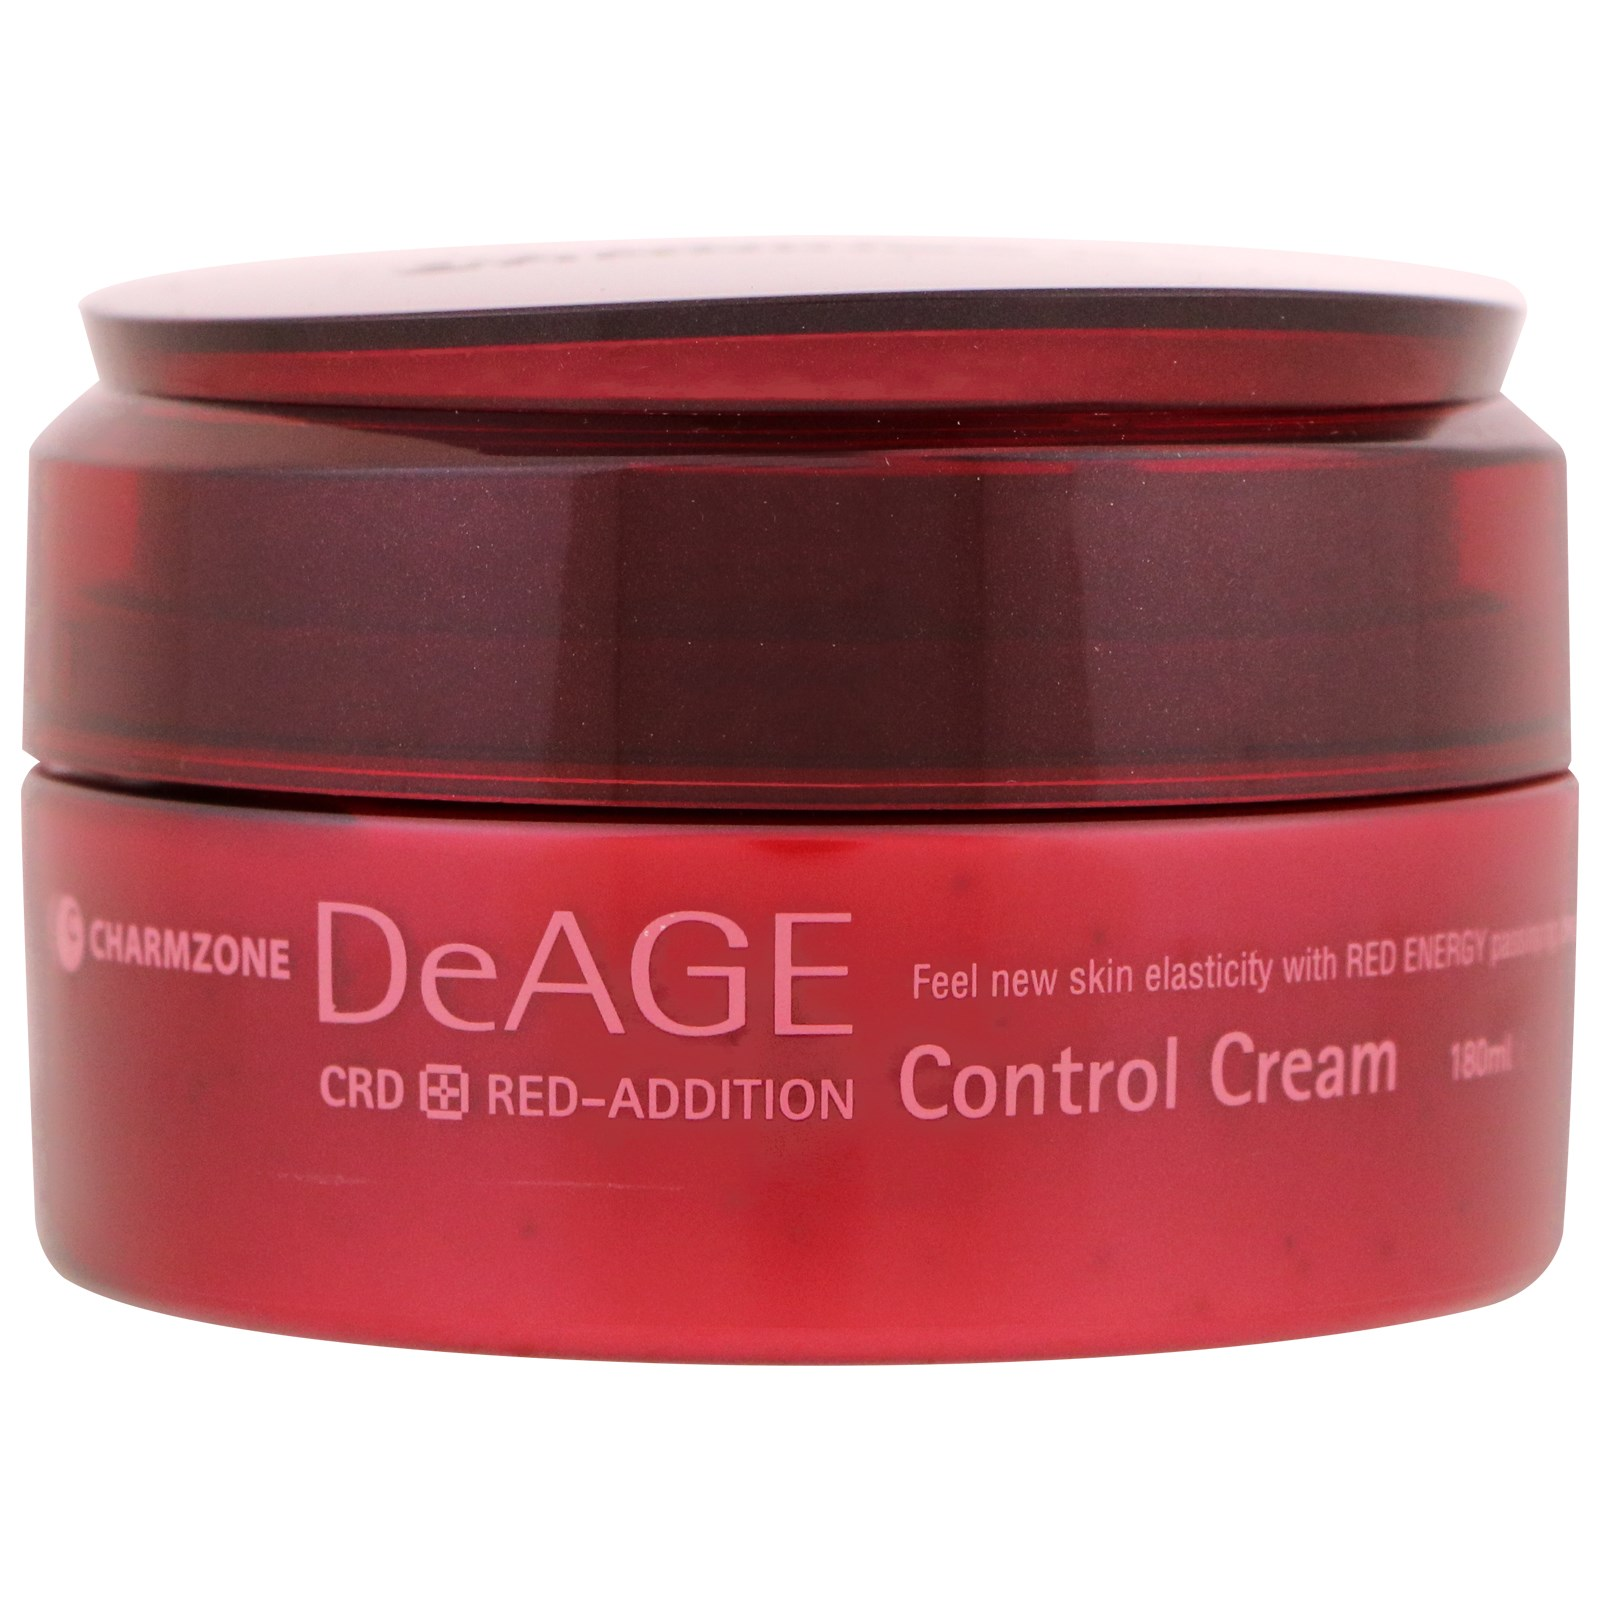 Charmzone, DeAge. Red-Addition, Emulsion, 4.39 fl oz (pack of 2) Jane Iredale Beauty Prep Face Moisturizer - .34oz